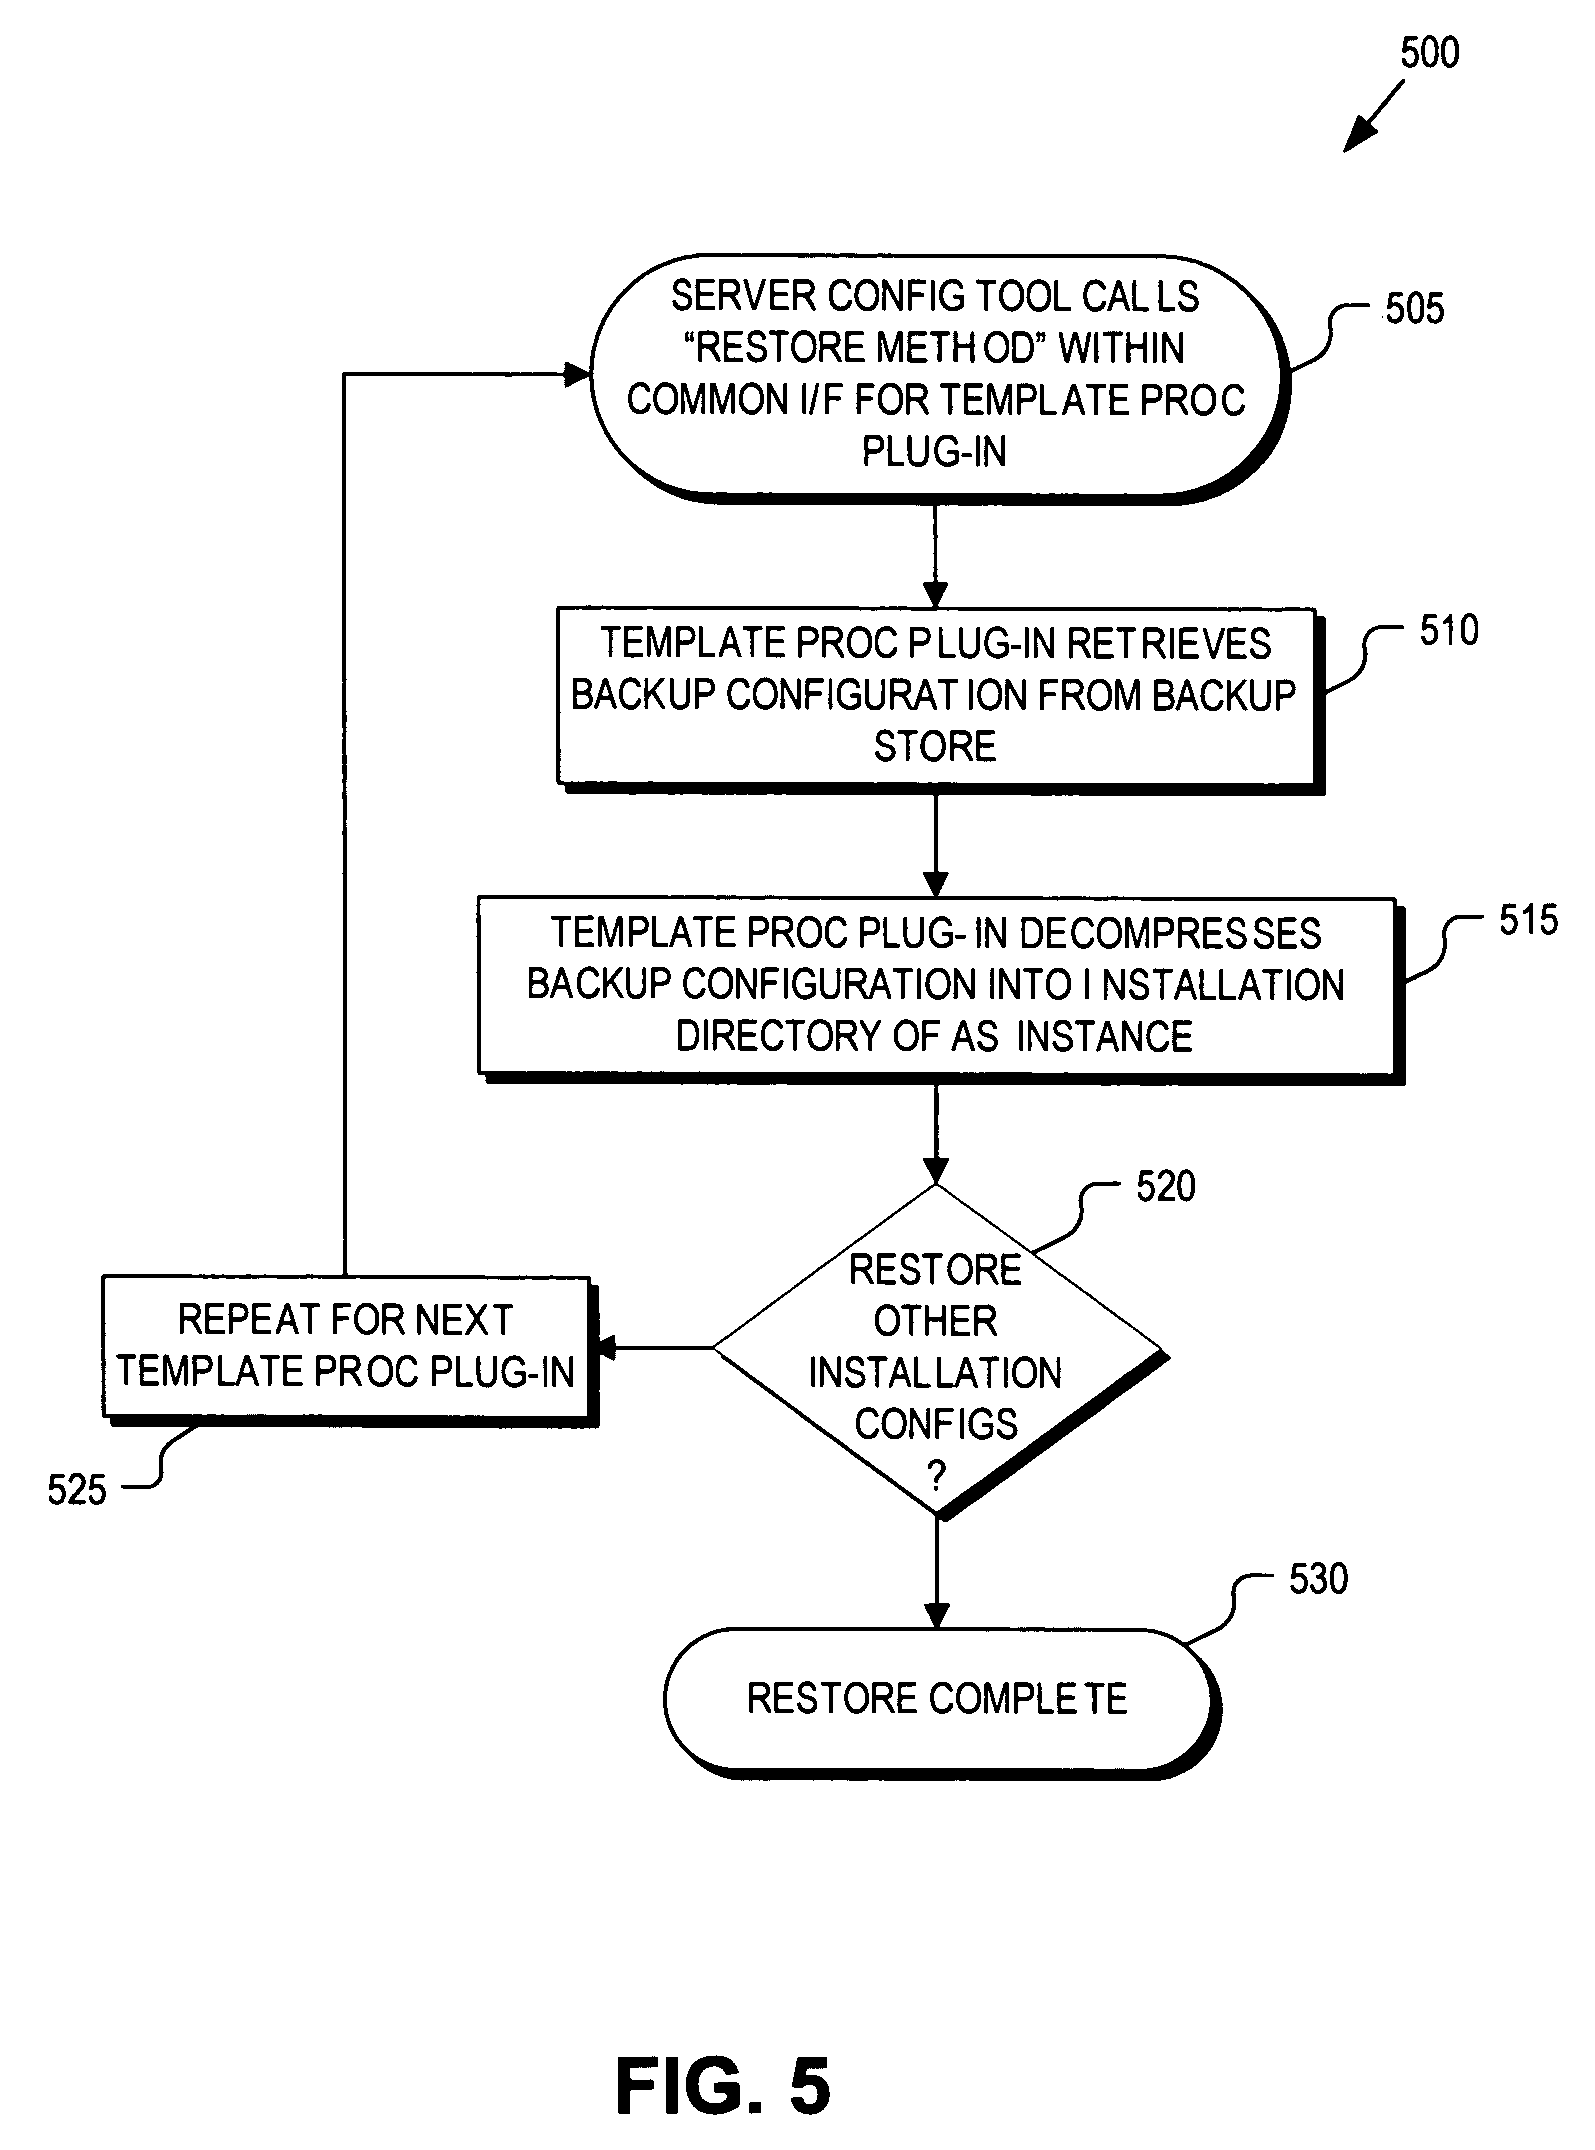 patent specification template - patent us20060242626 template configuration tool for